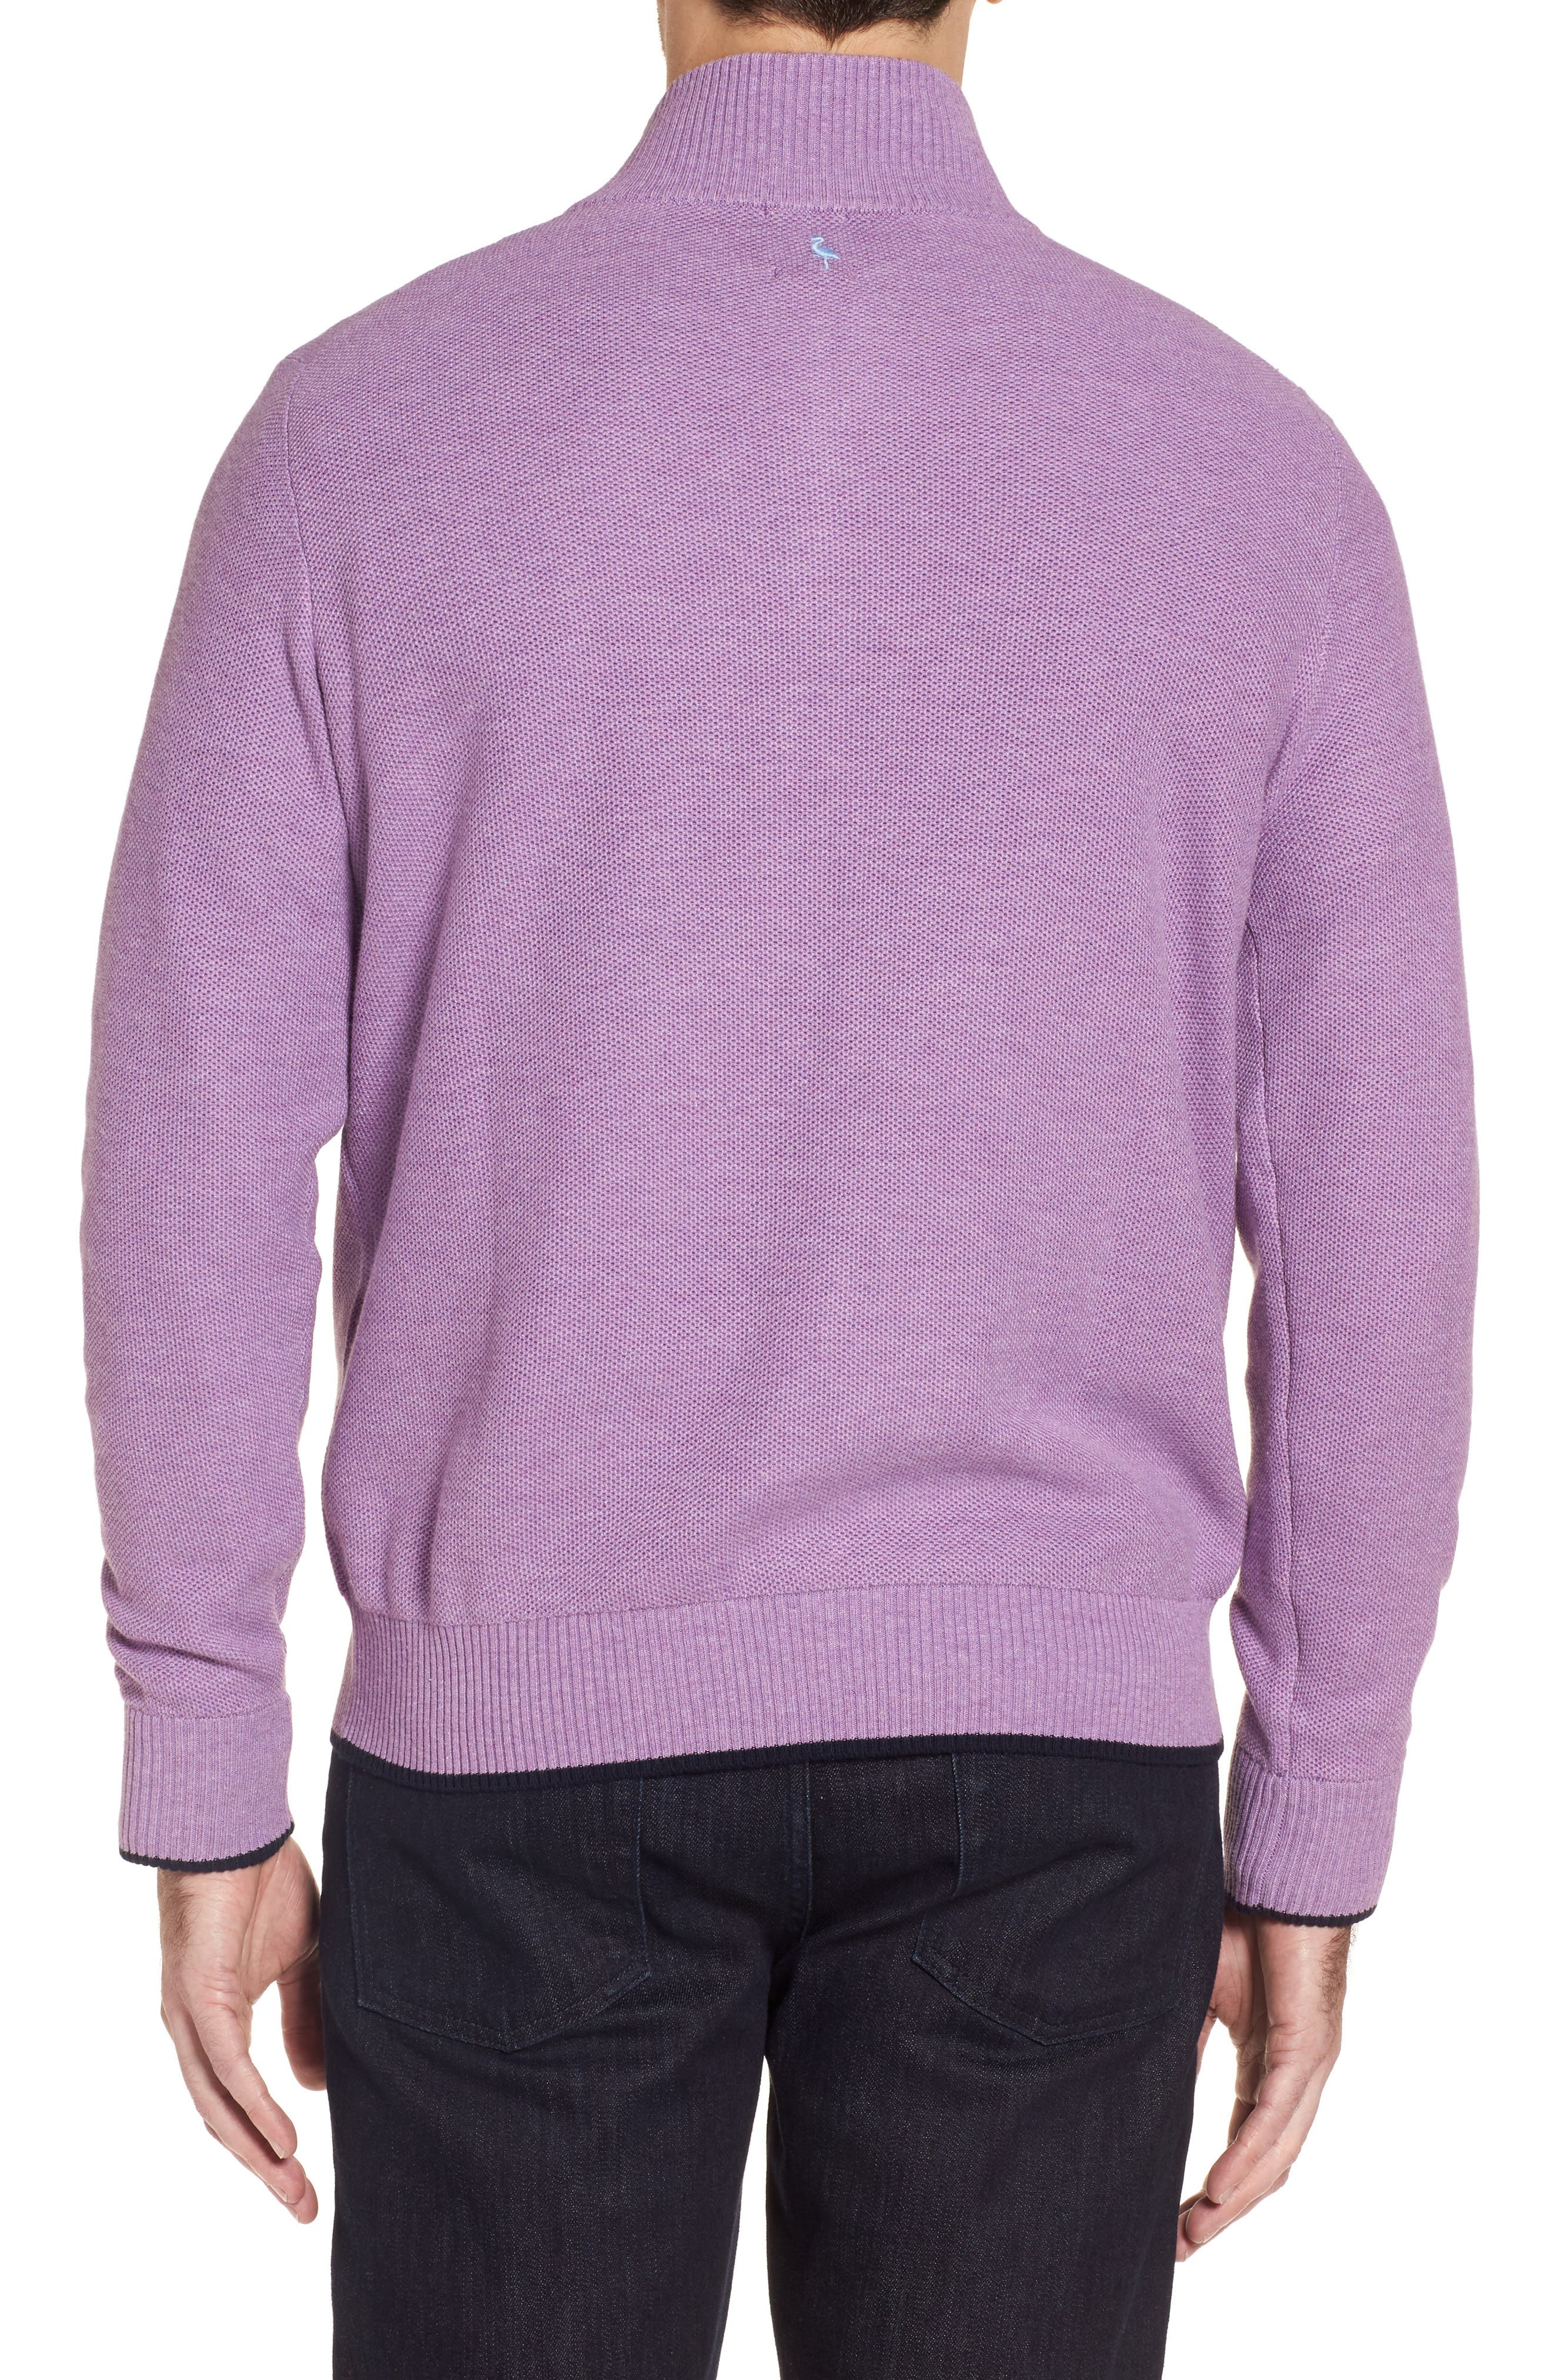 Ossun Tipped Quarter Zip Sweater,                             Alternate thumbnail 2, color,